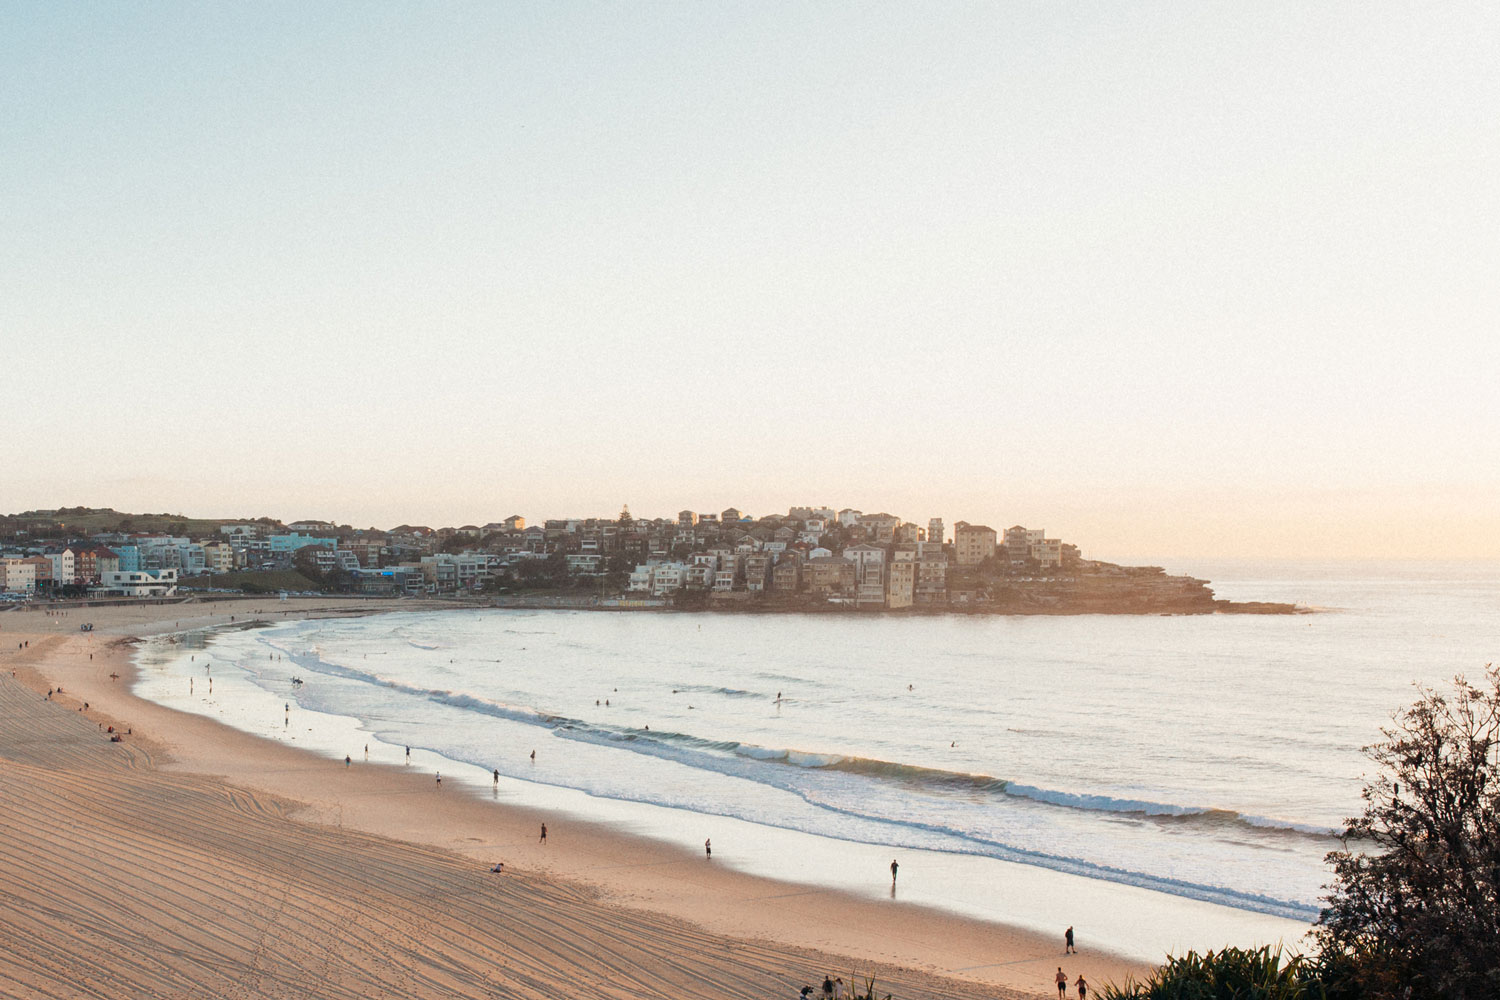 The_Ink_Collective_Creative_Content_Agency_Paris_Editorial_Luxury_Travel_Guide_Review_Sydney_Australia_6.JPG